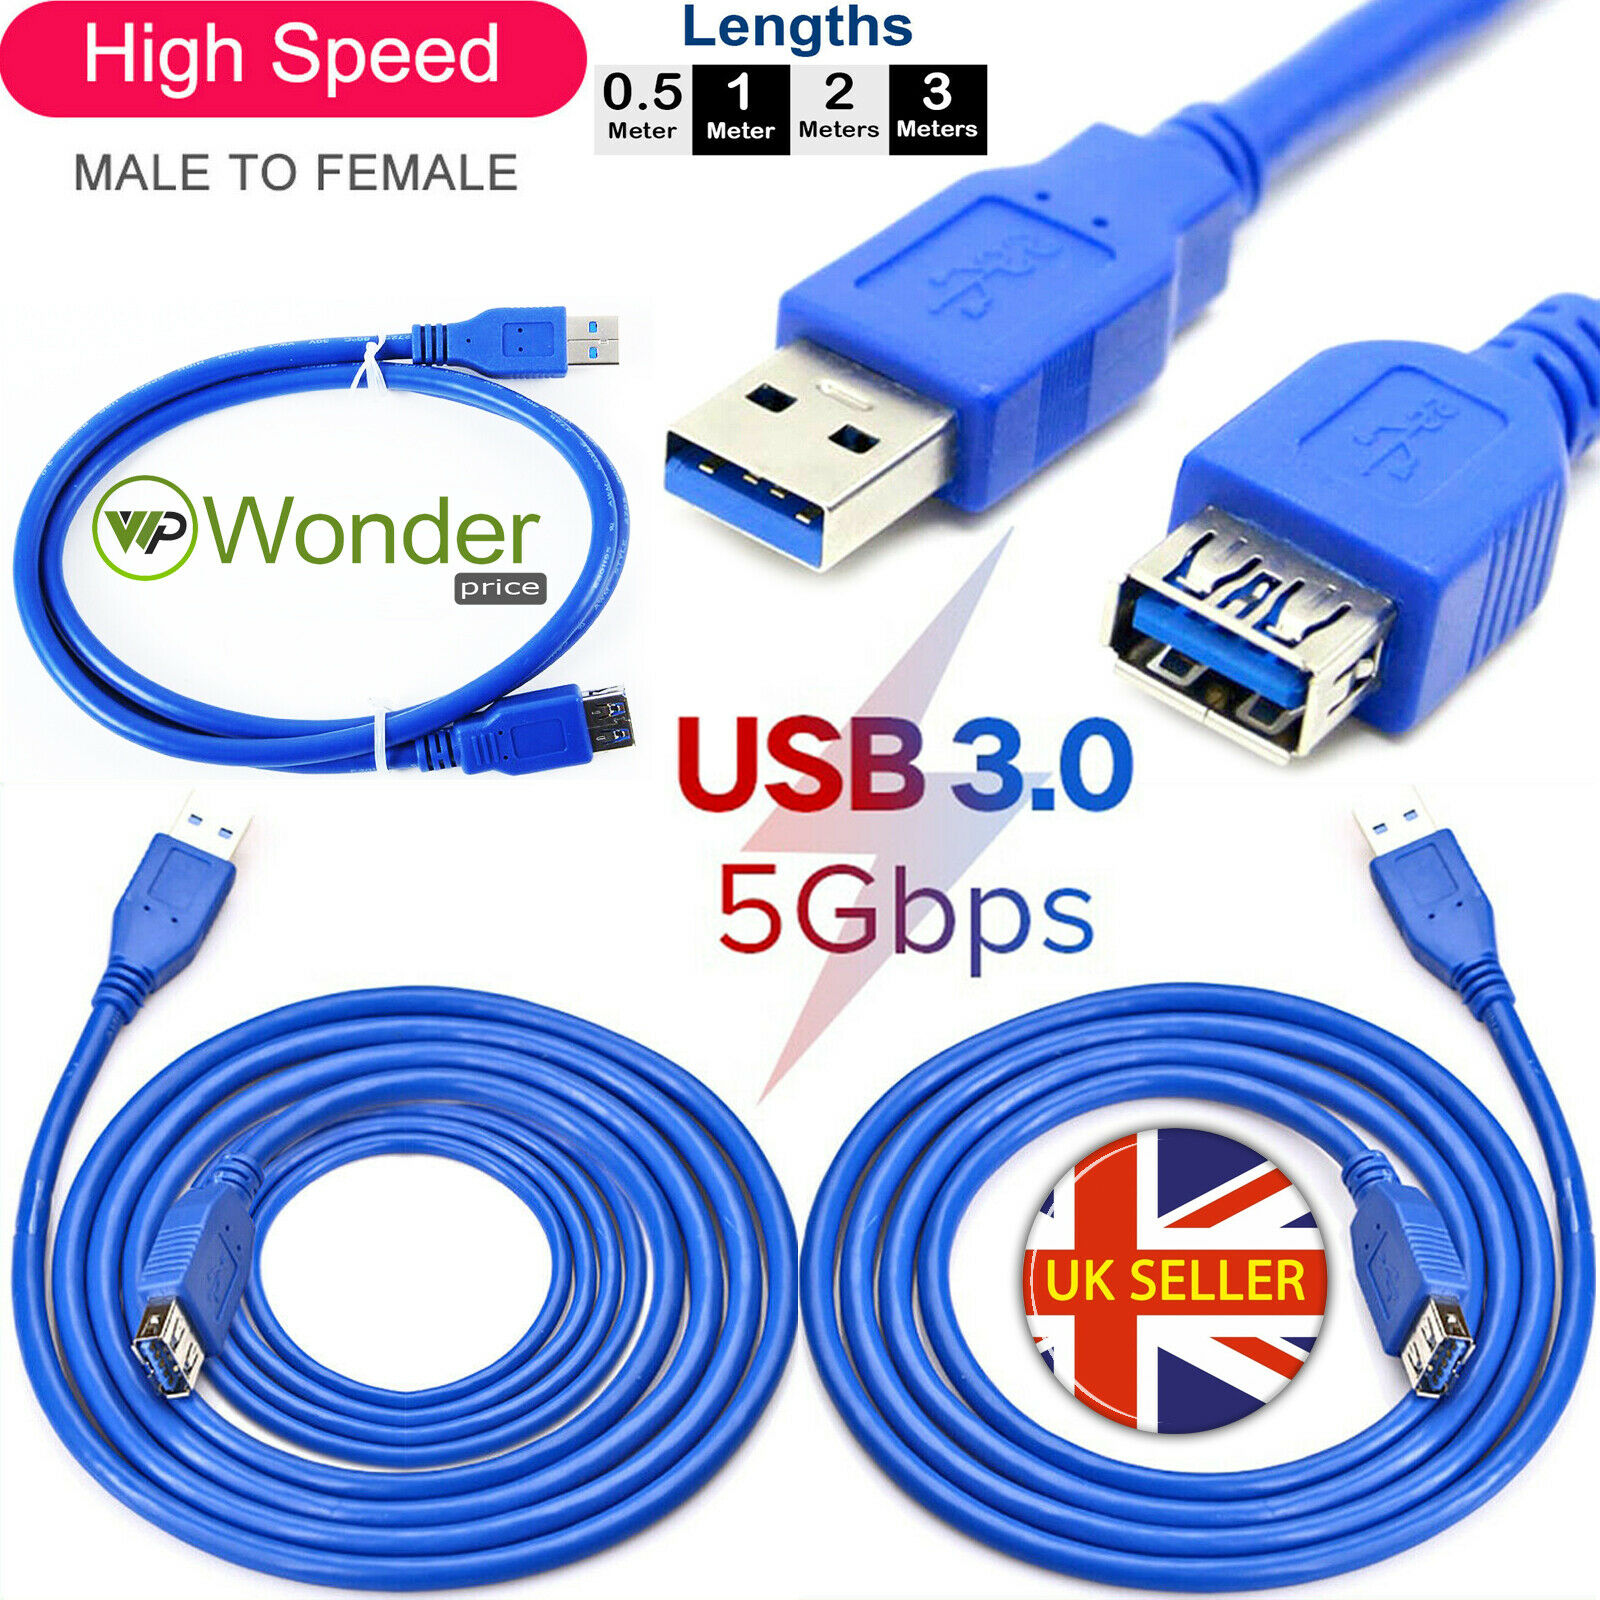 USB 3.0 Standard A Male To Female Extension Cable Lead For PC Laptop Computer UK